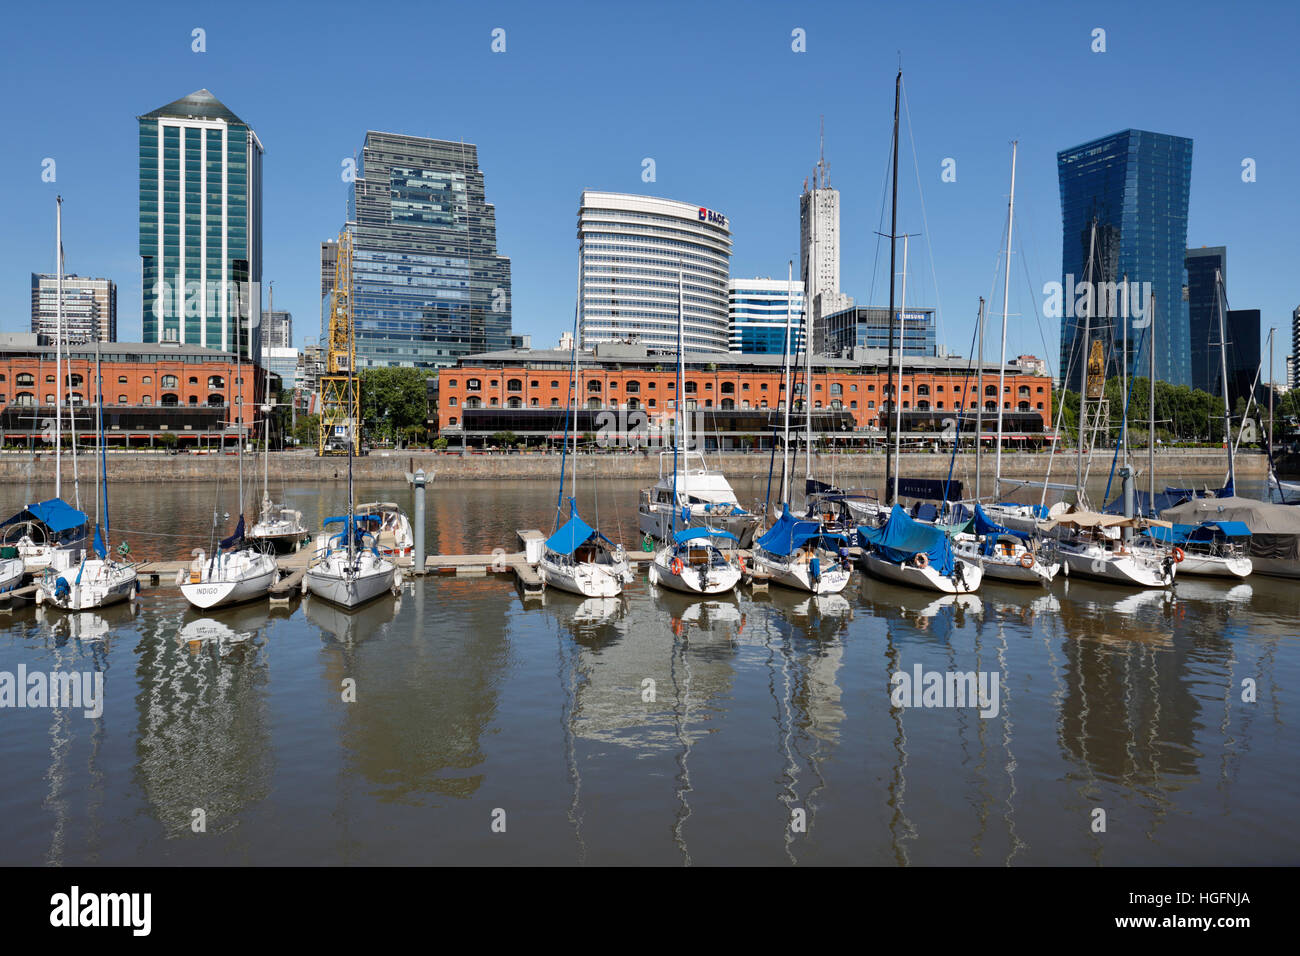 Old warehouses and office buildings from marina of Puerto Madero, San Telmo, Buenos Aires, Argentina, South America - Stock Image